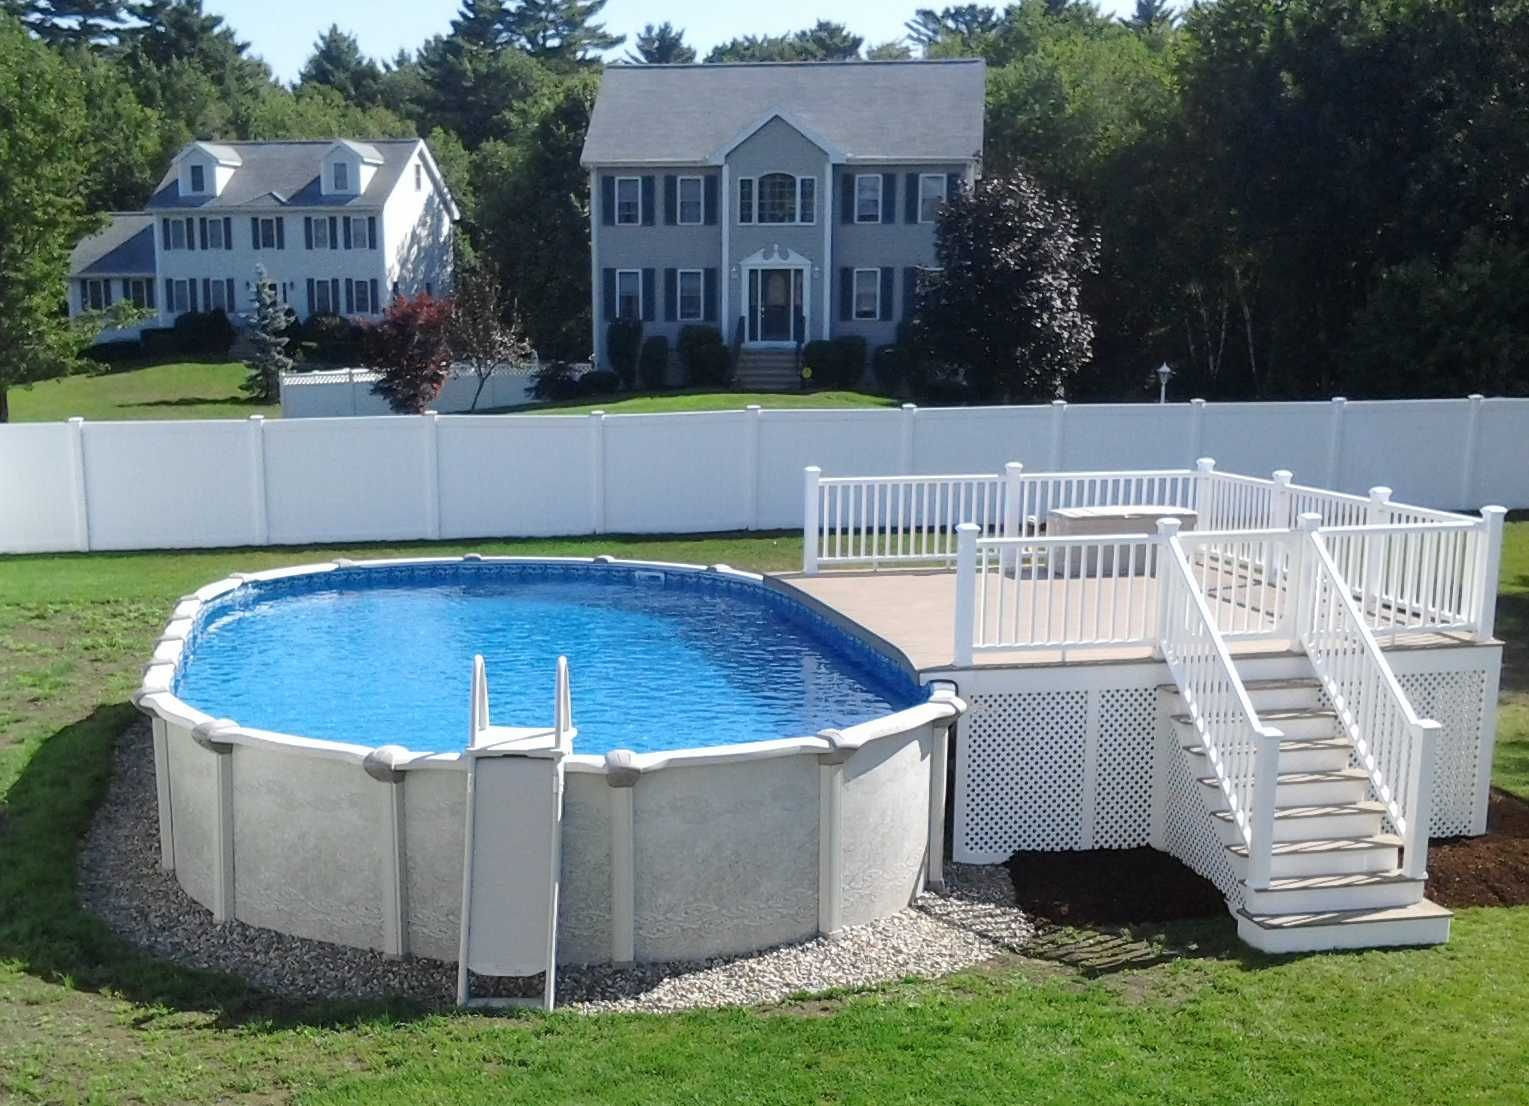 charming above ground pool decks designs. Charming To Beautify Your Home Page With Exceptional Deck Pool Design  Beautiful Above Ground Ideas Featuring White Wooden Painted Amazing Decks Just Mass Quality Affordable